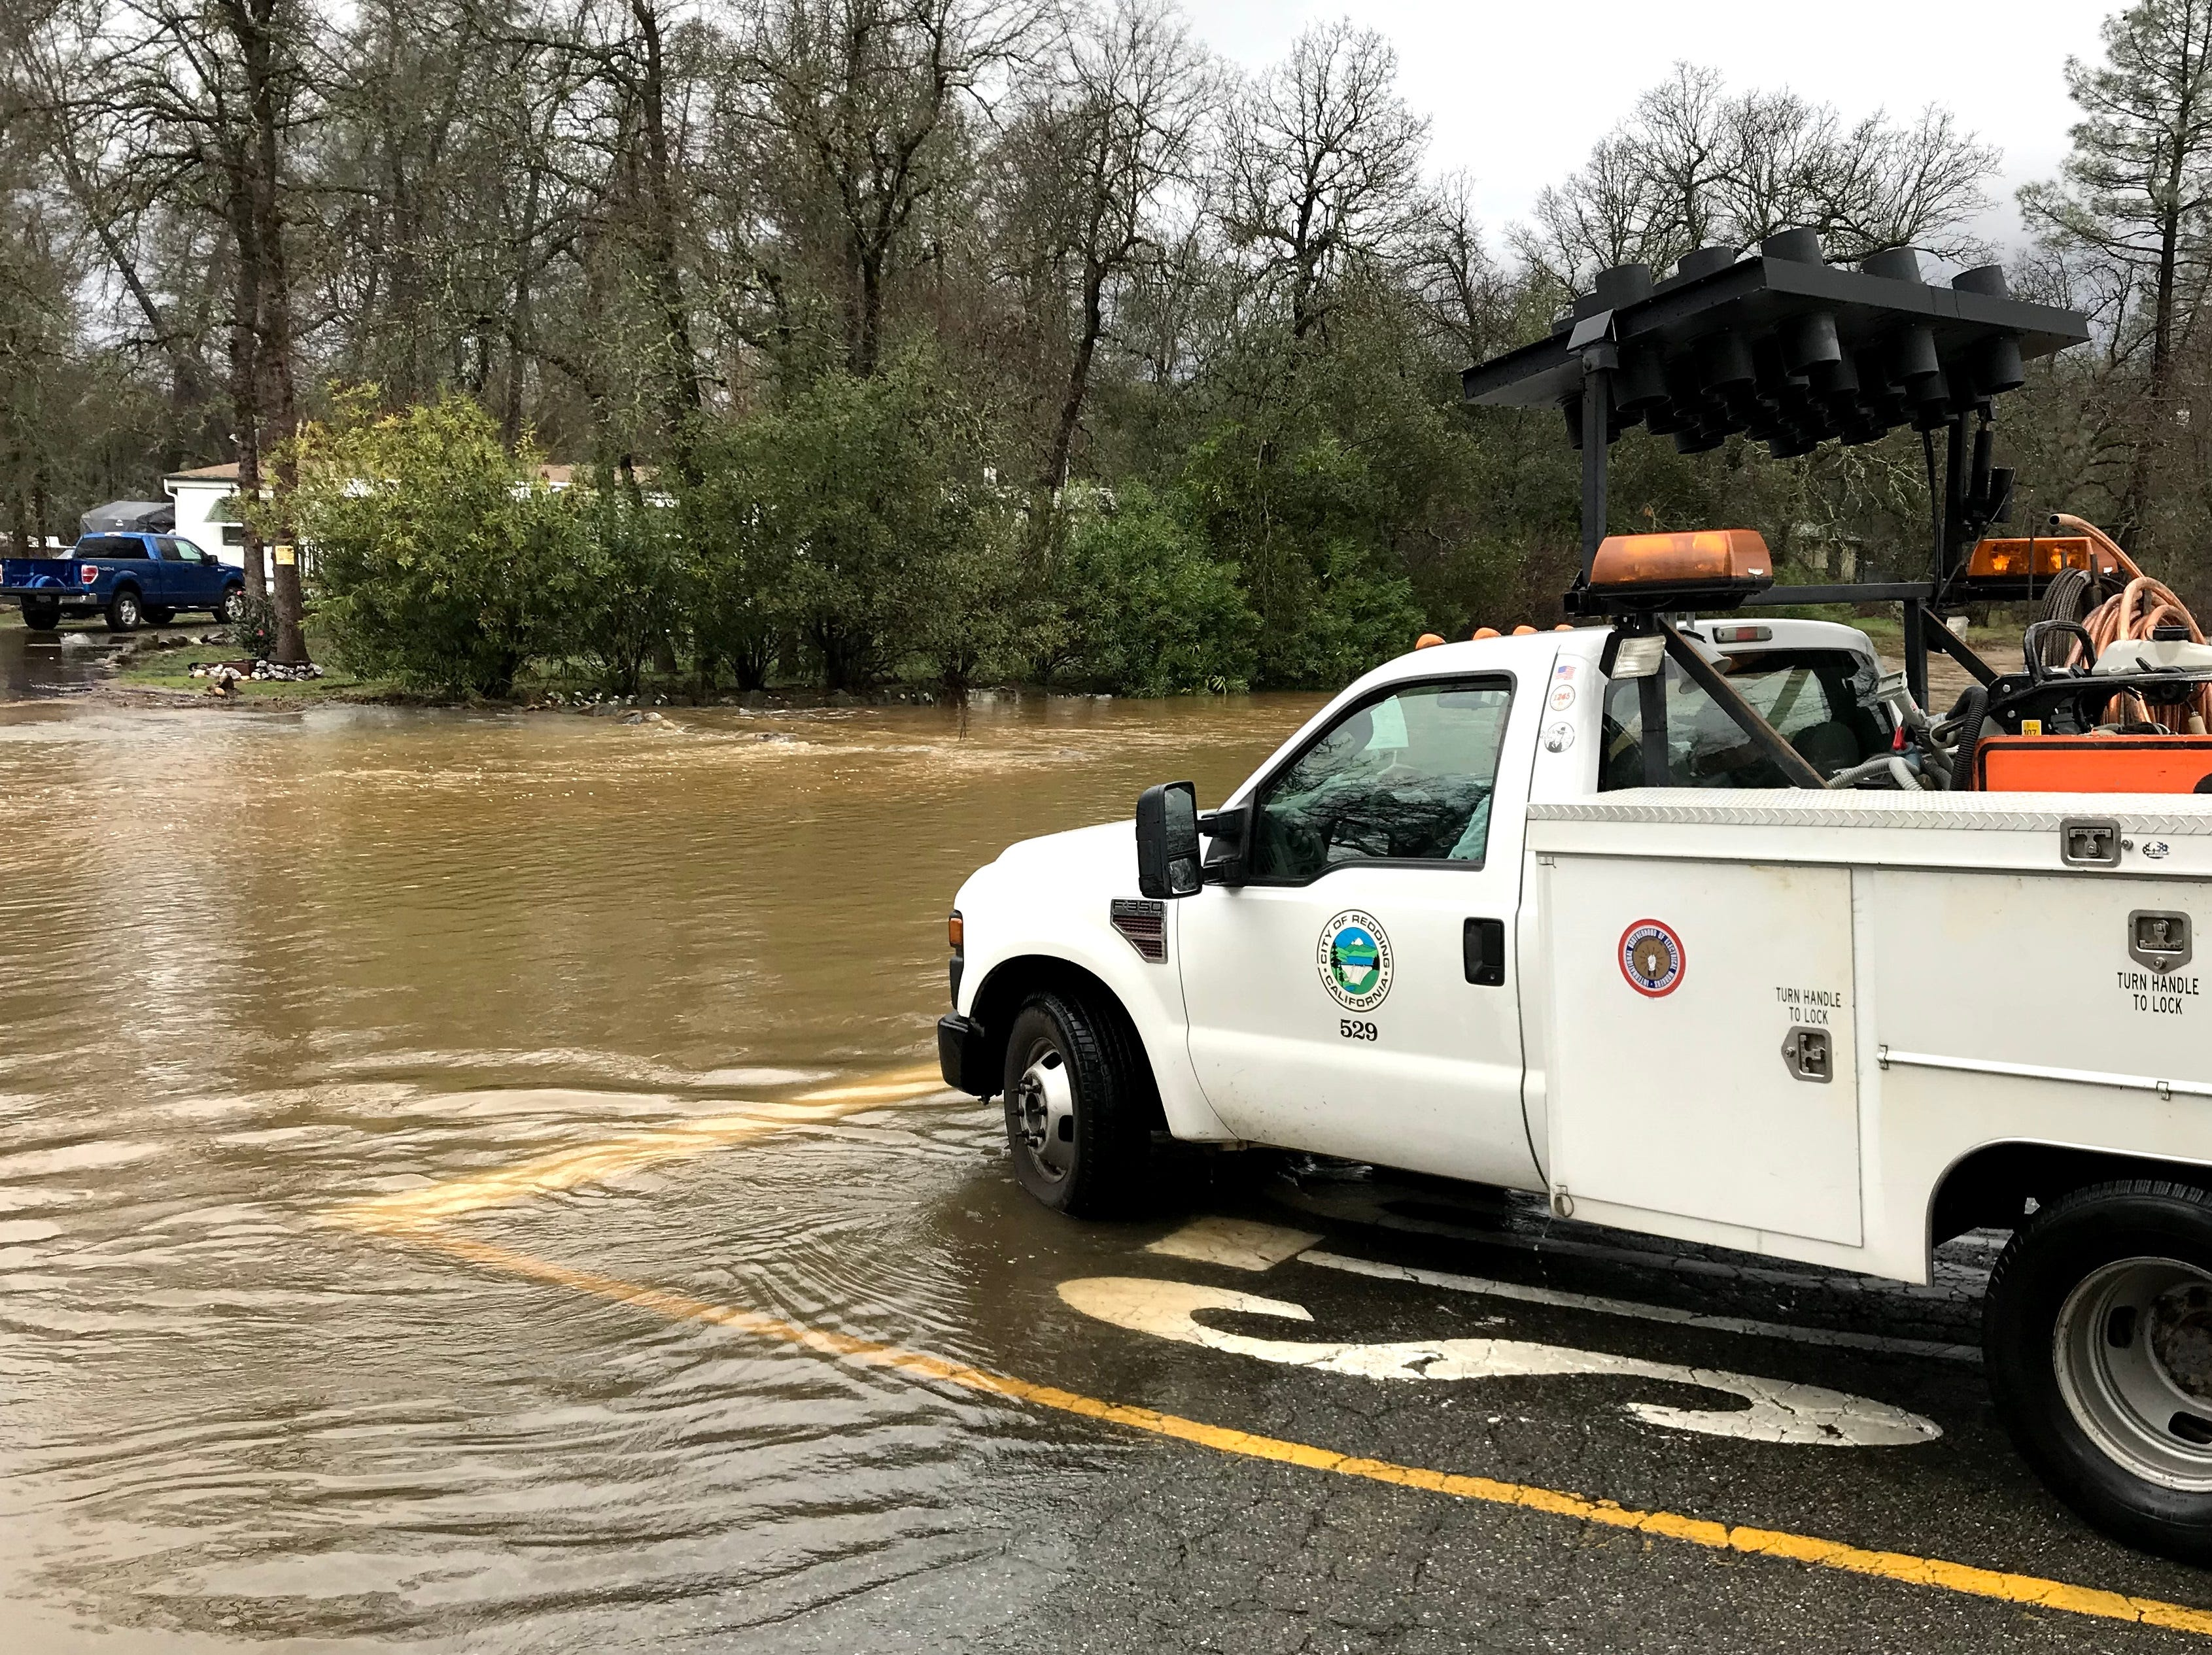 A Shasta County Public Works Department truck stops before entering floodwaters on Old Oasis Road in north Redding.